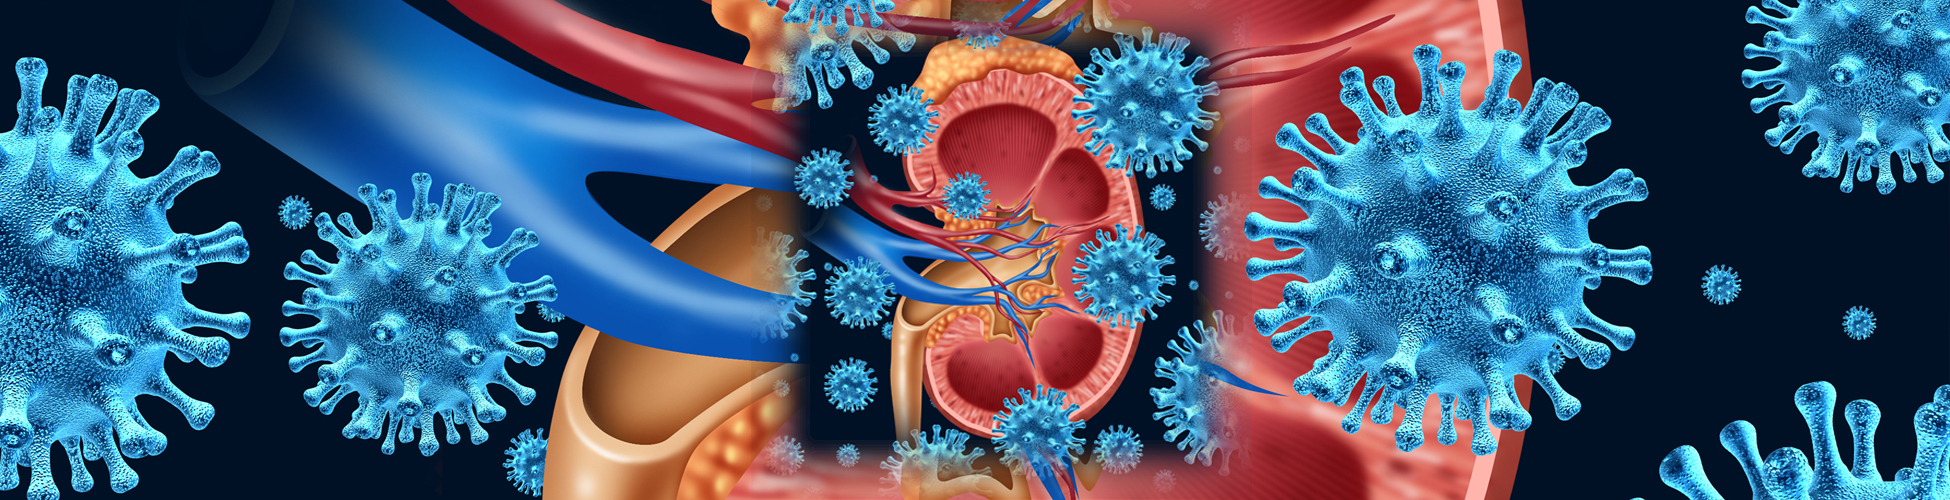 Kidney animation slider image